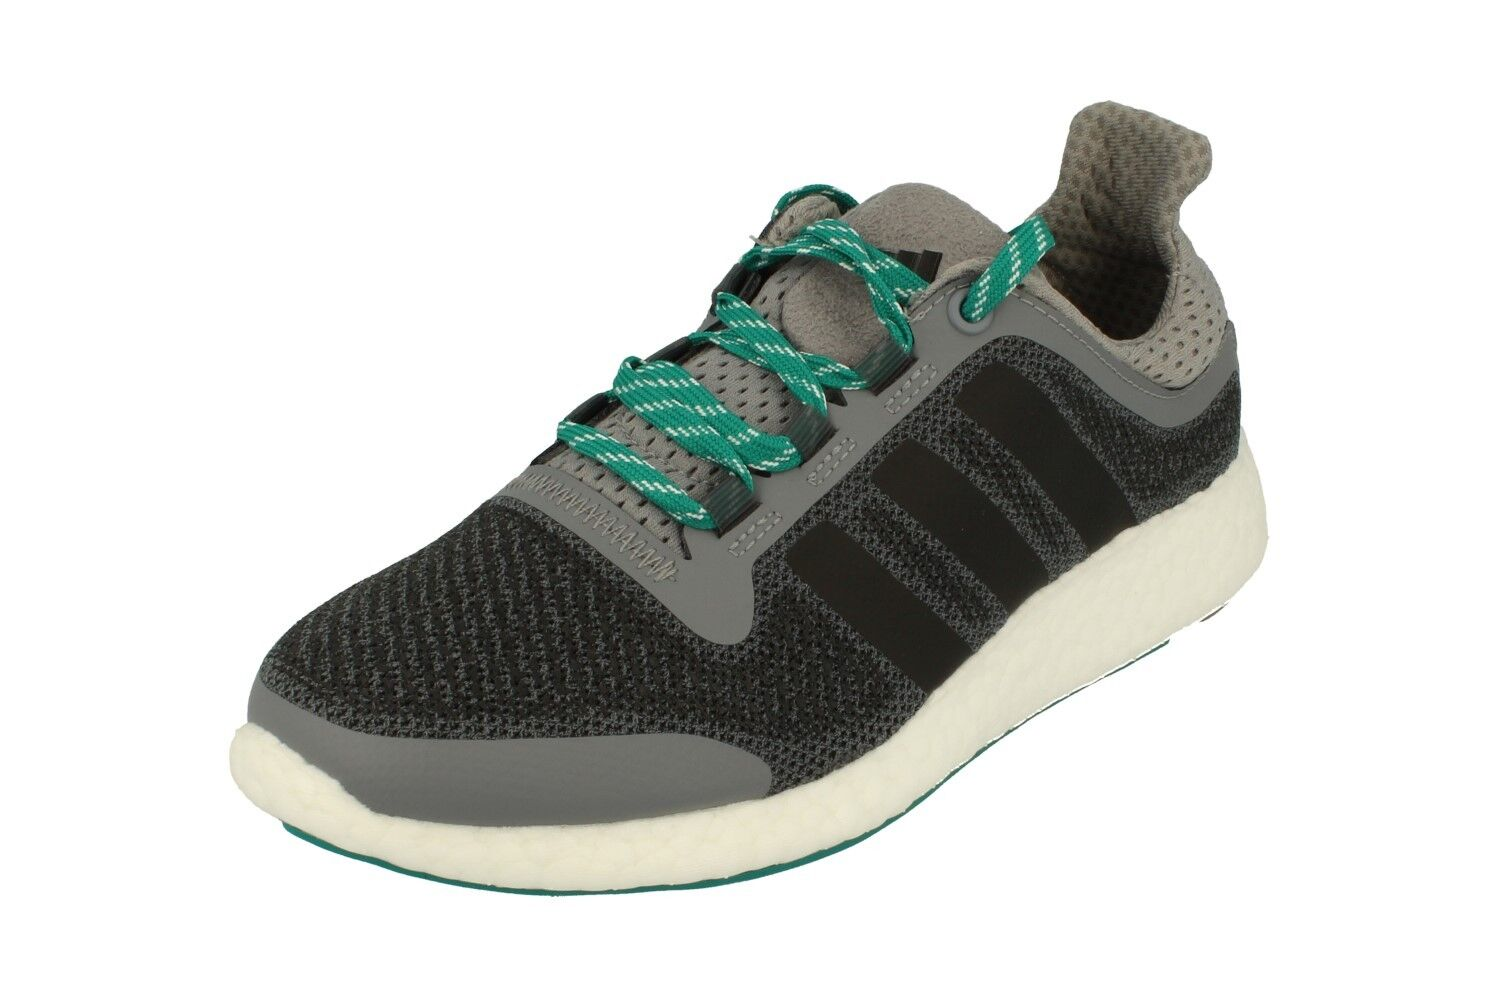 Adidas Pureboost 2 Hombre AQ4440 Running Trainers Sneakers Zapatos AQ4440 Hombre c43aee